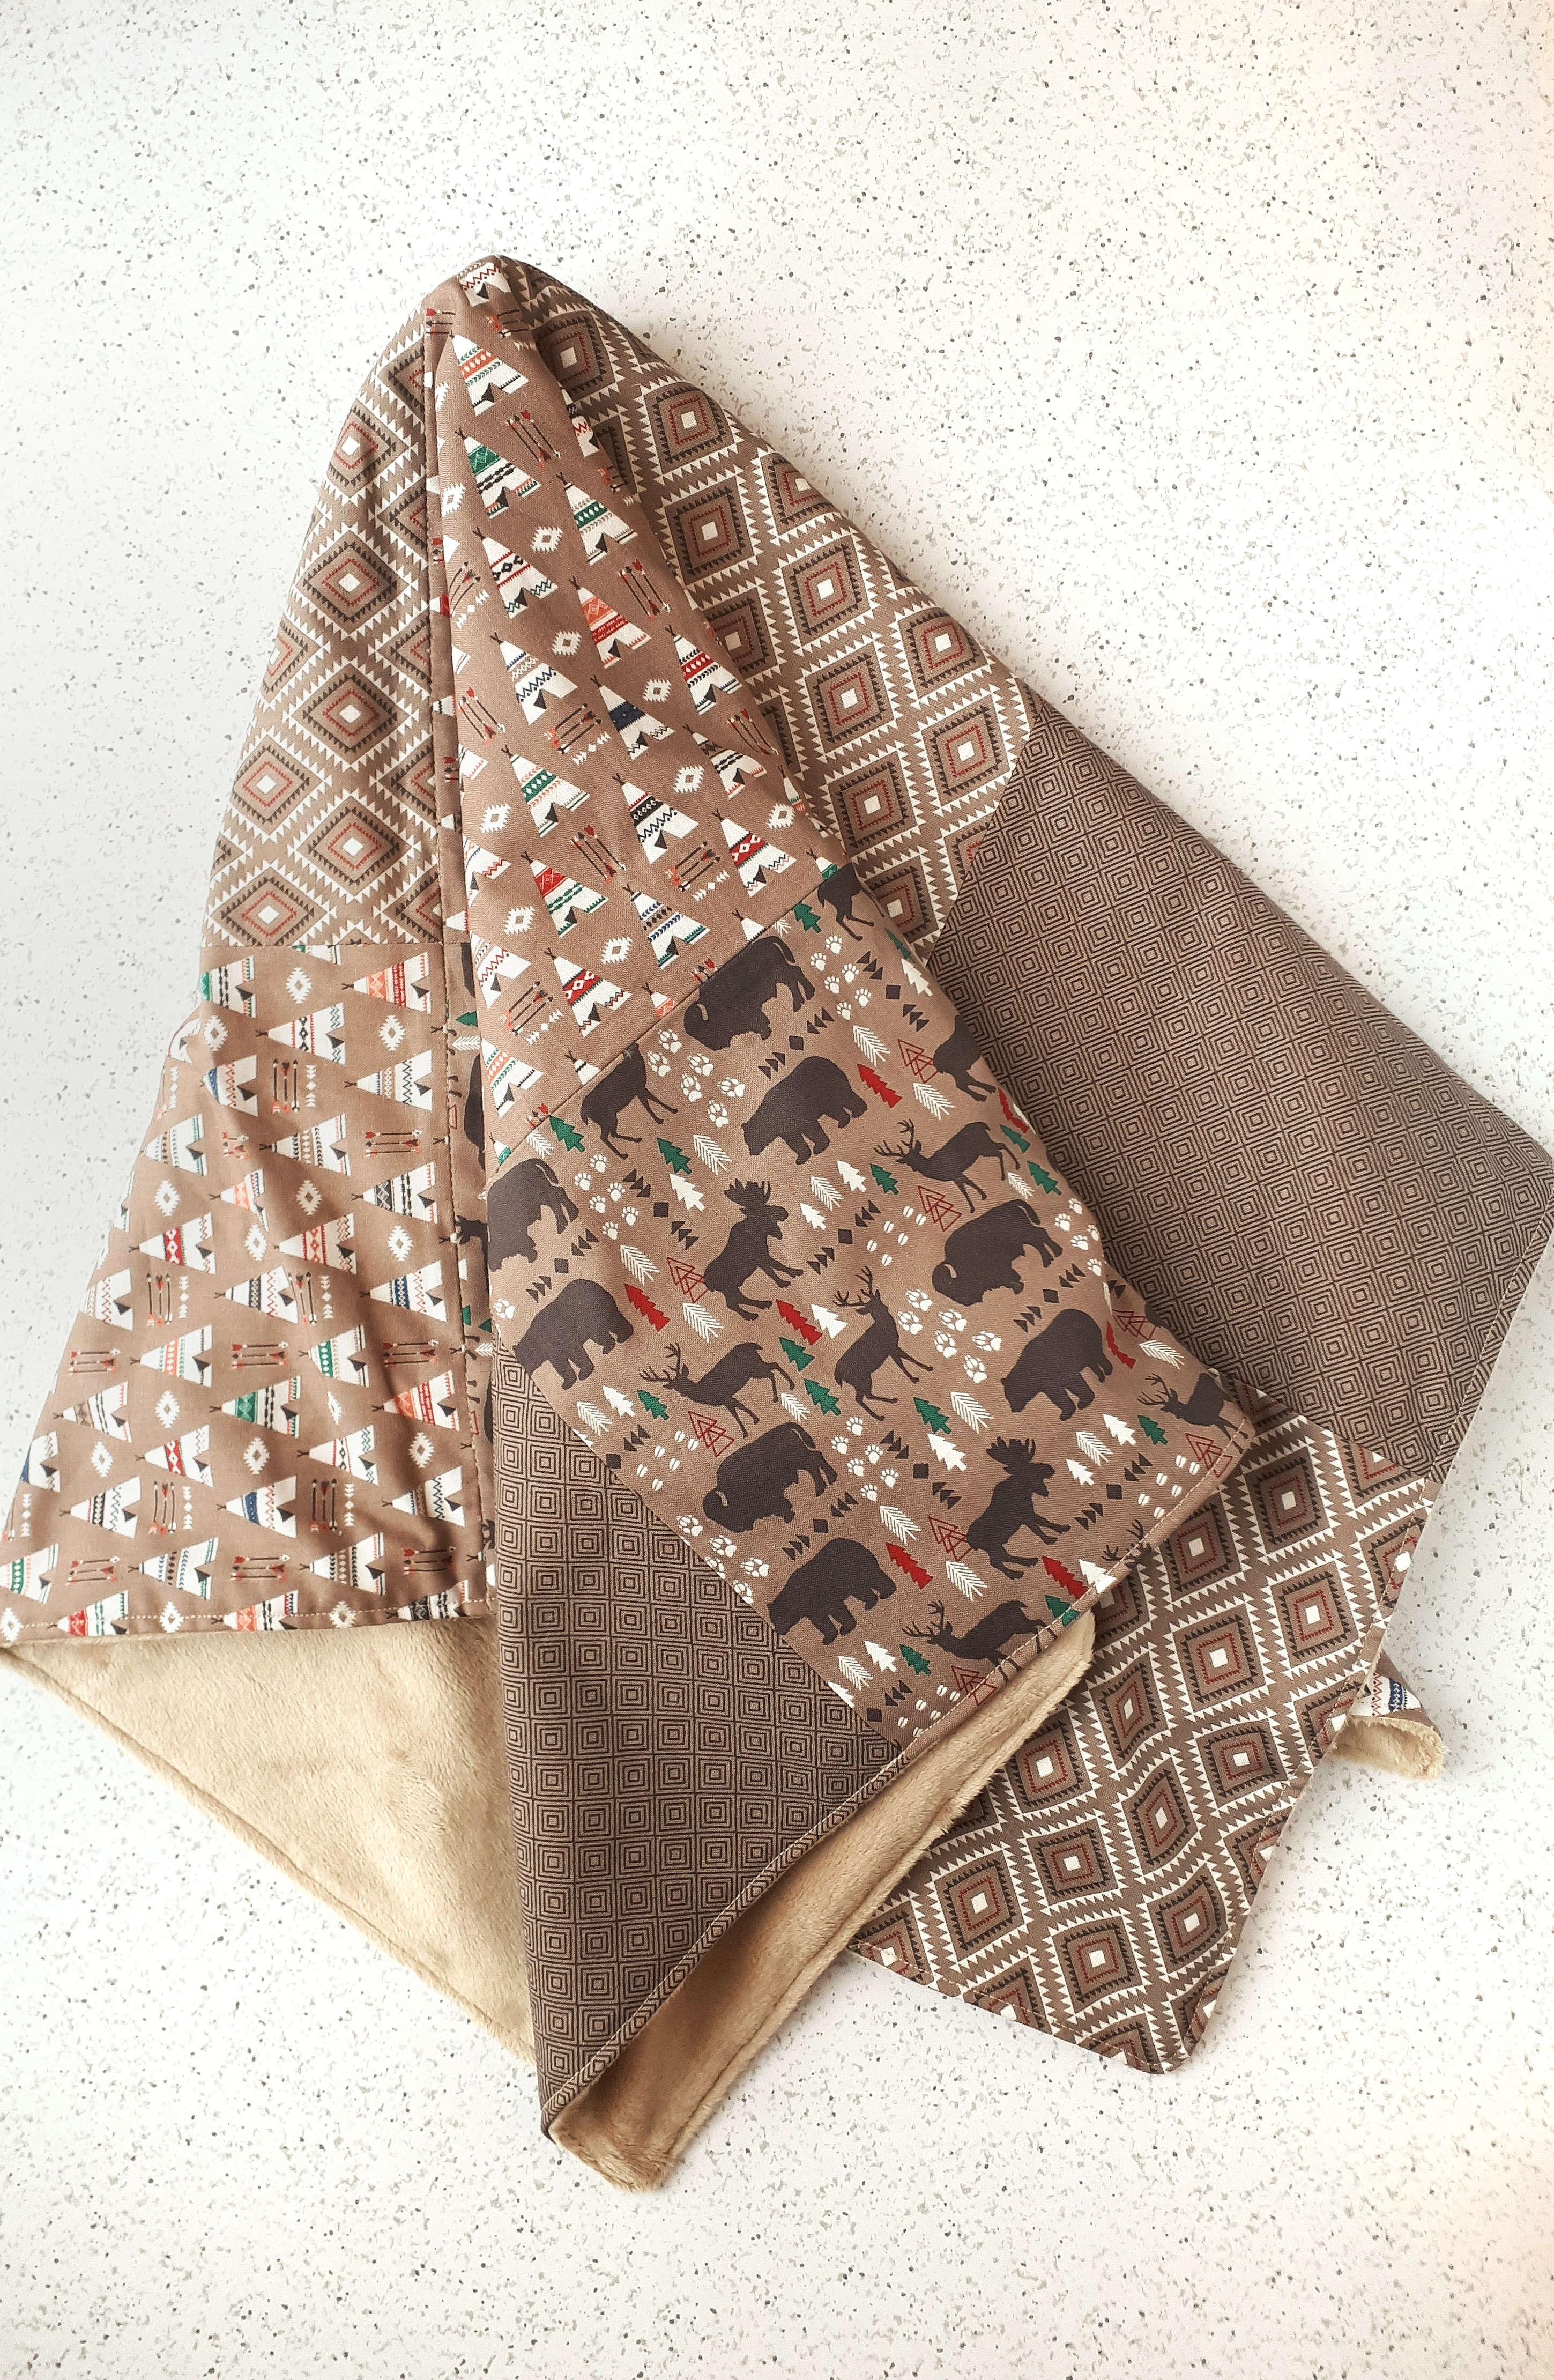 Cute patchwork baby blanket tutorial. You only need about 2 hours to complete this simple DIY sewing project!